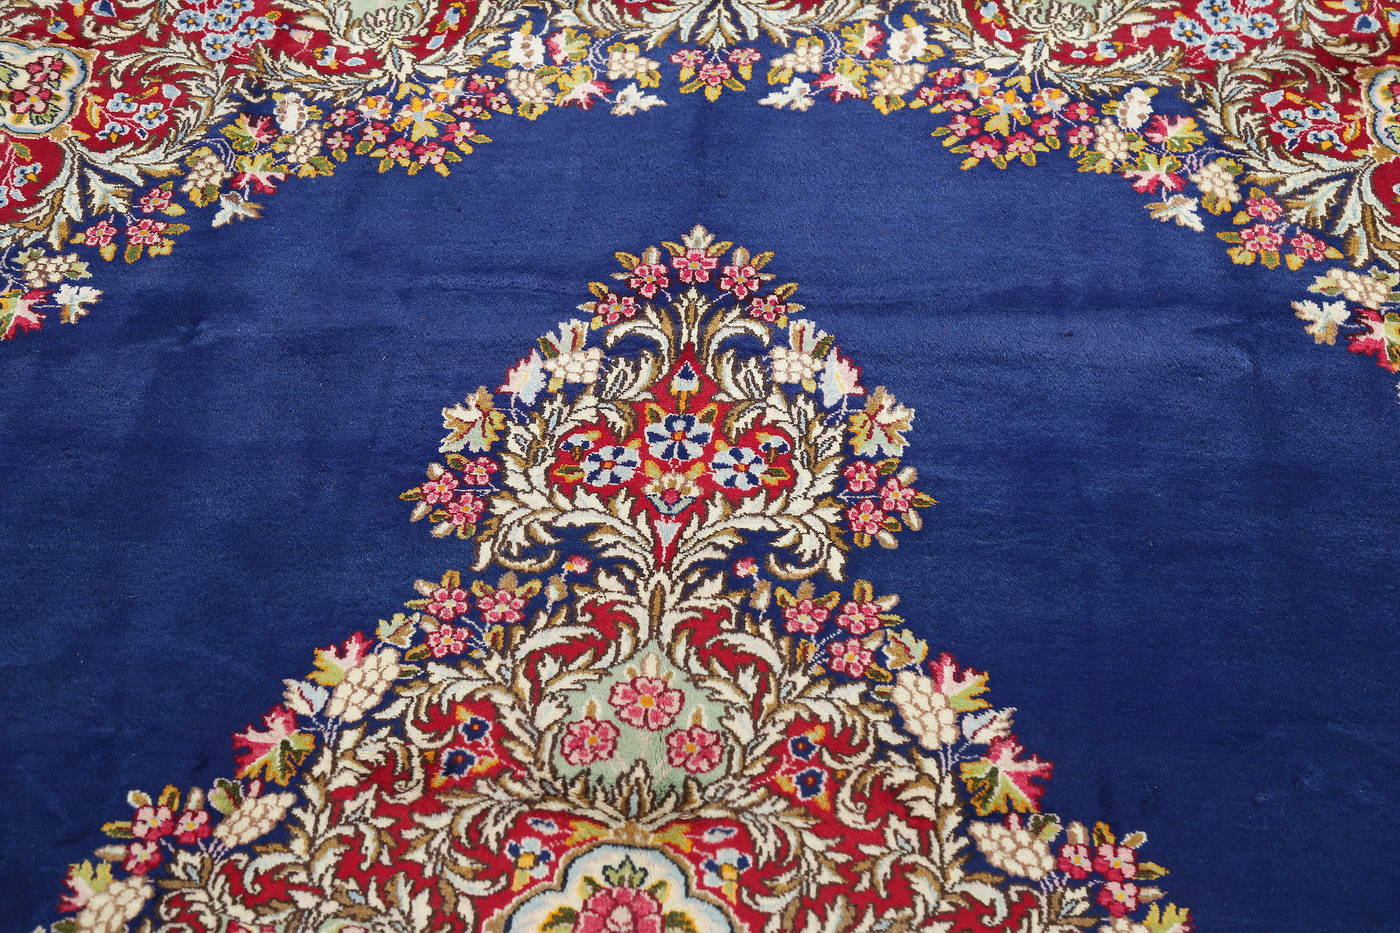 Floral Blue Kerman Persian Hand-Knotted Area Rug Wool 9x12